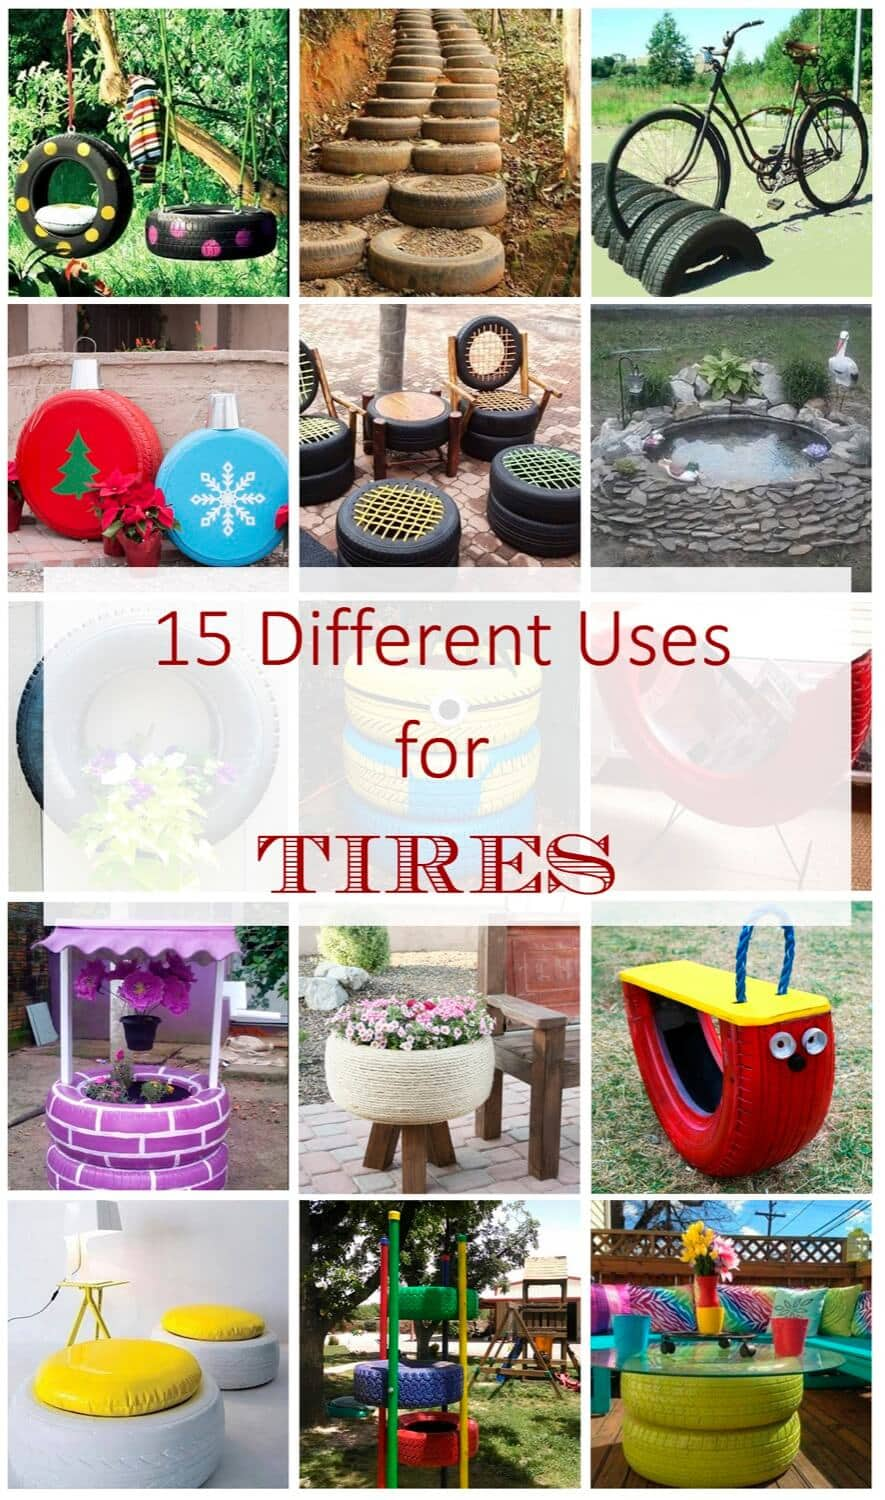 15 Different Uses For Tires · Some easy ideas to recycle old tires · Via www.sweethings.net